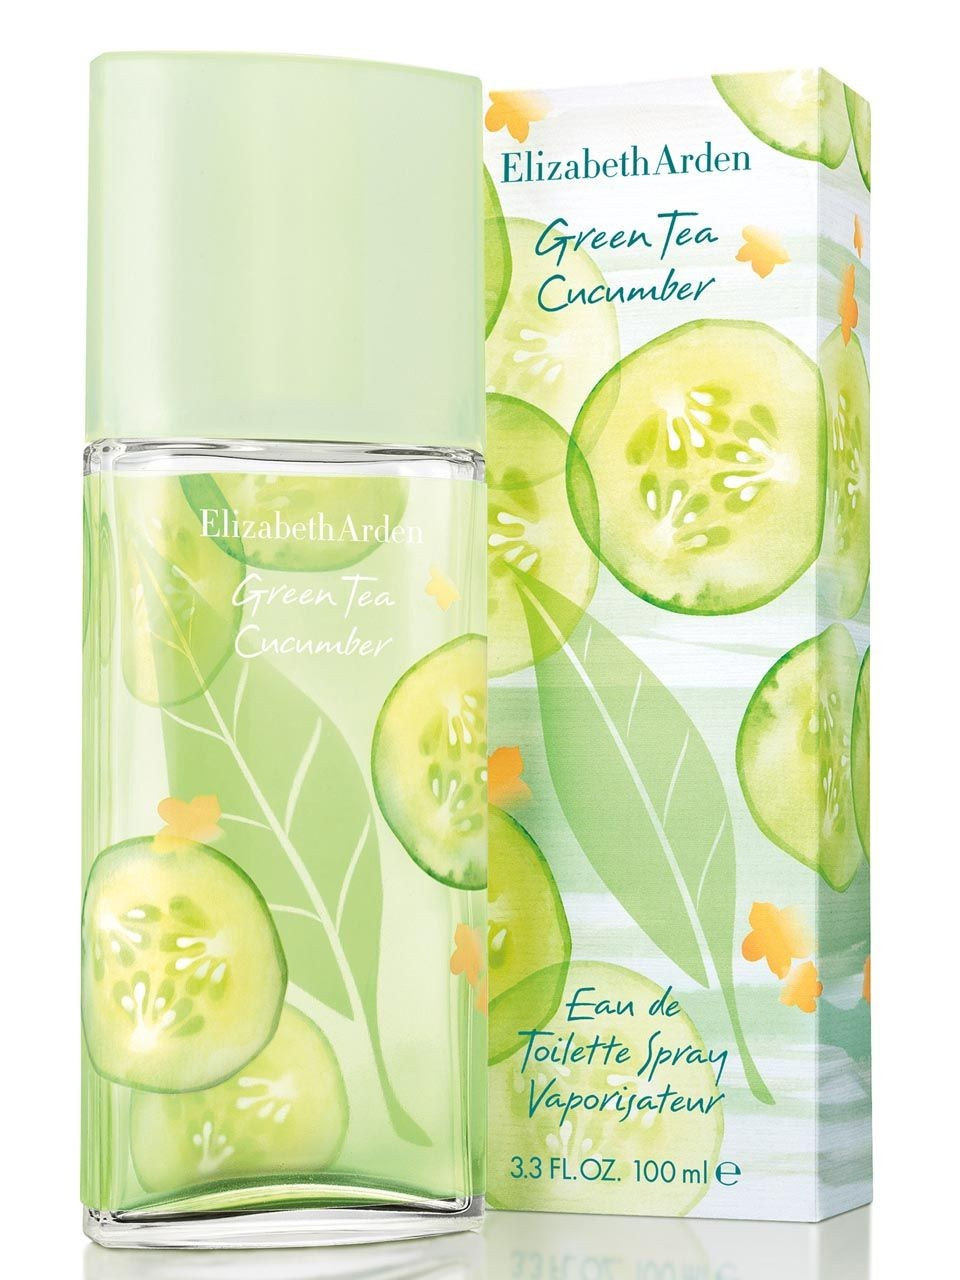 Green Tea Cucumber Elizabeth Arden perfume - a new ...